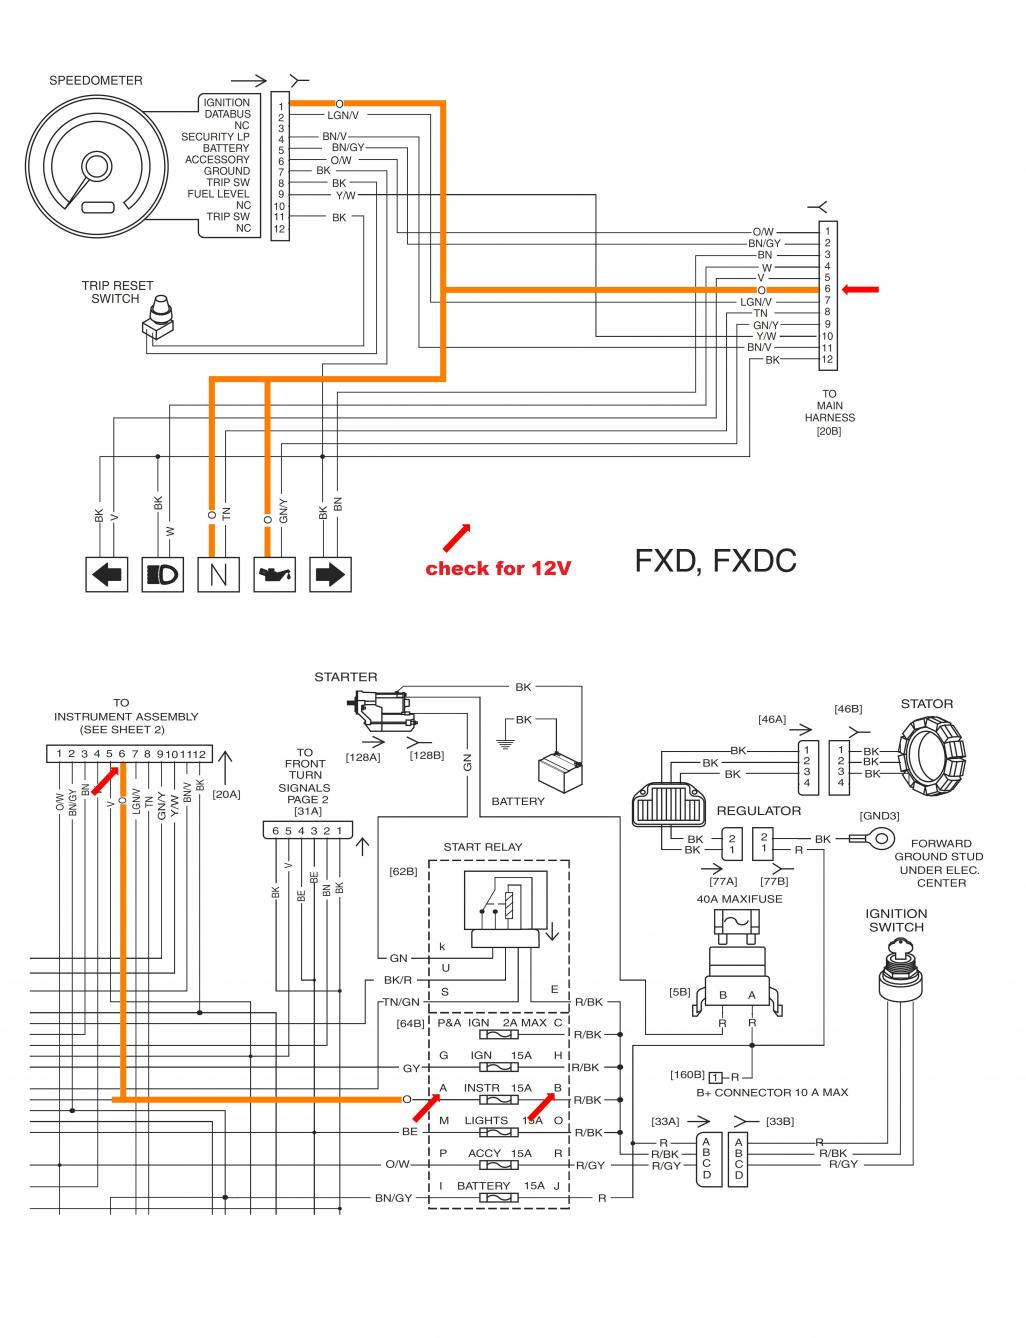 Wiring diagrams likewise Manuals diagrams together with Harley Davidson Fxdwg Wiring Diagram moreover Motorcycle Wiring Diagram as well Wiring diagrams. on harley davidson super glide wiring diagram manual